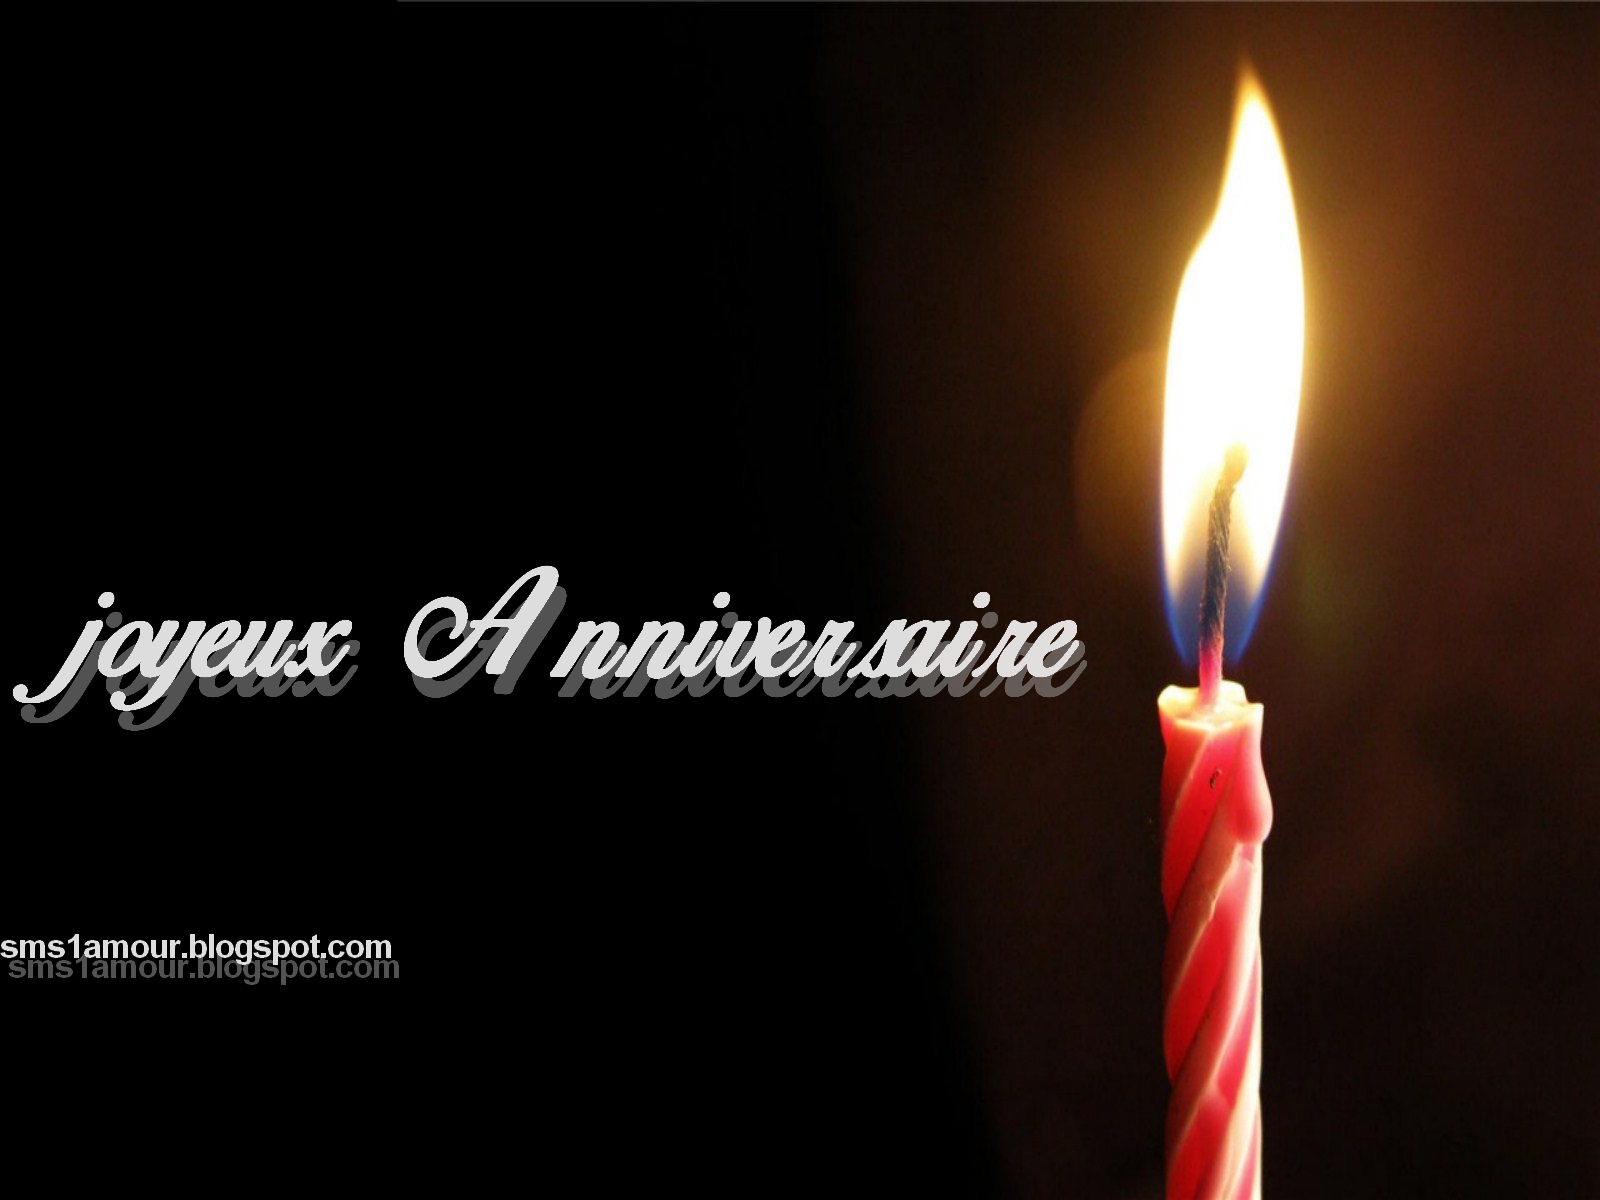 Sms Danniversaire Sms Et Message Damour Sms Love Sms